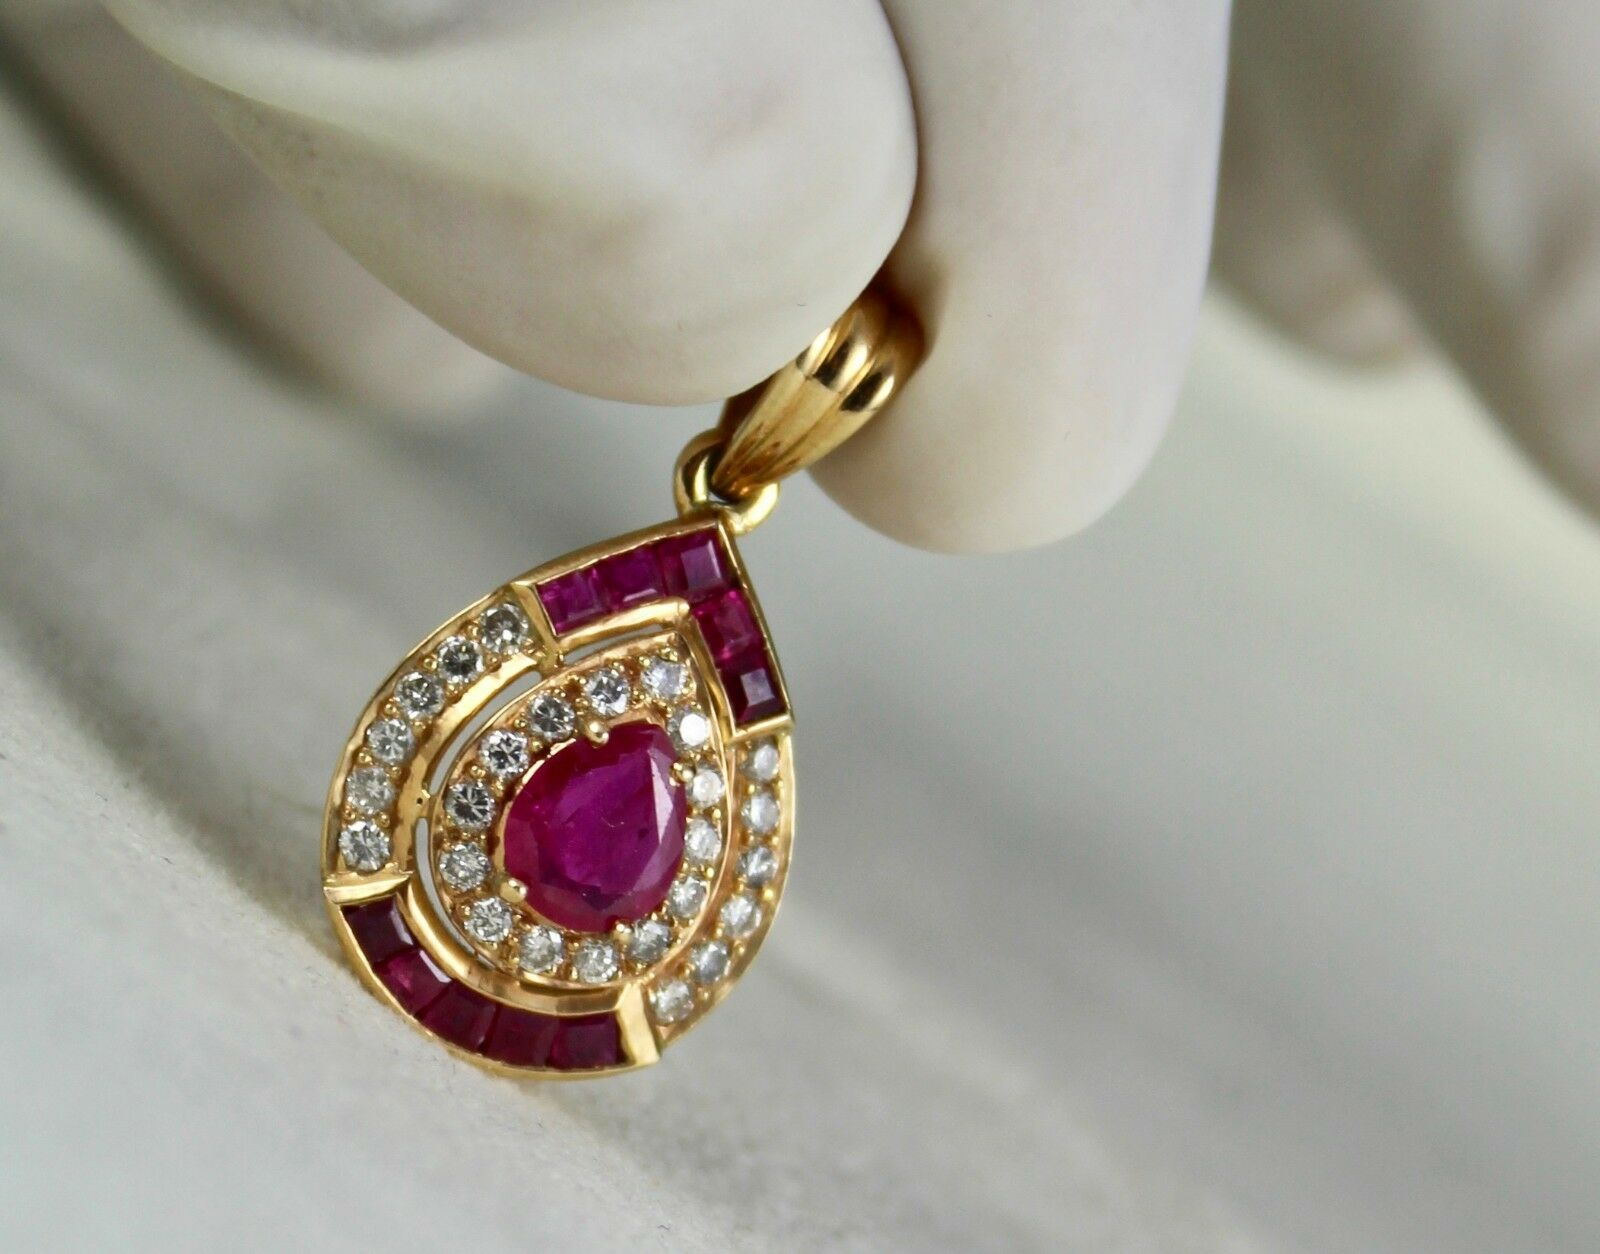 EXCLUSIVE NATURAL HEATED RUBY PEAR DIAMOND PENDANT IN 18K YELLOW gold